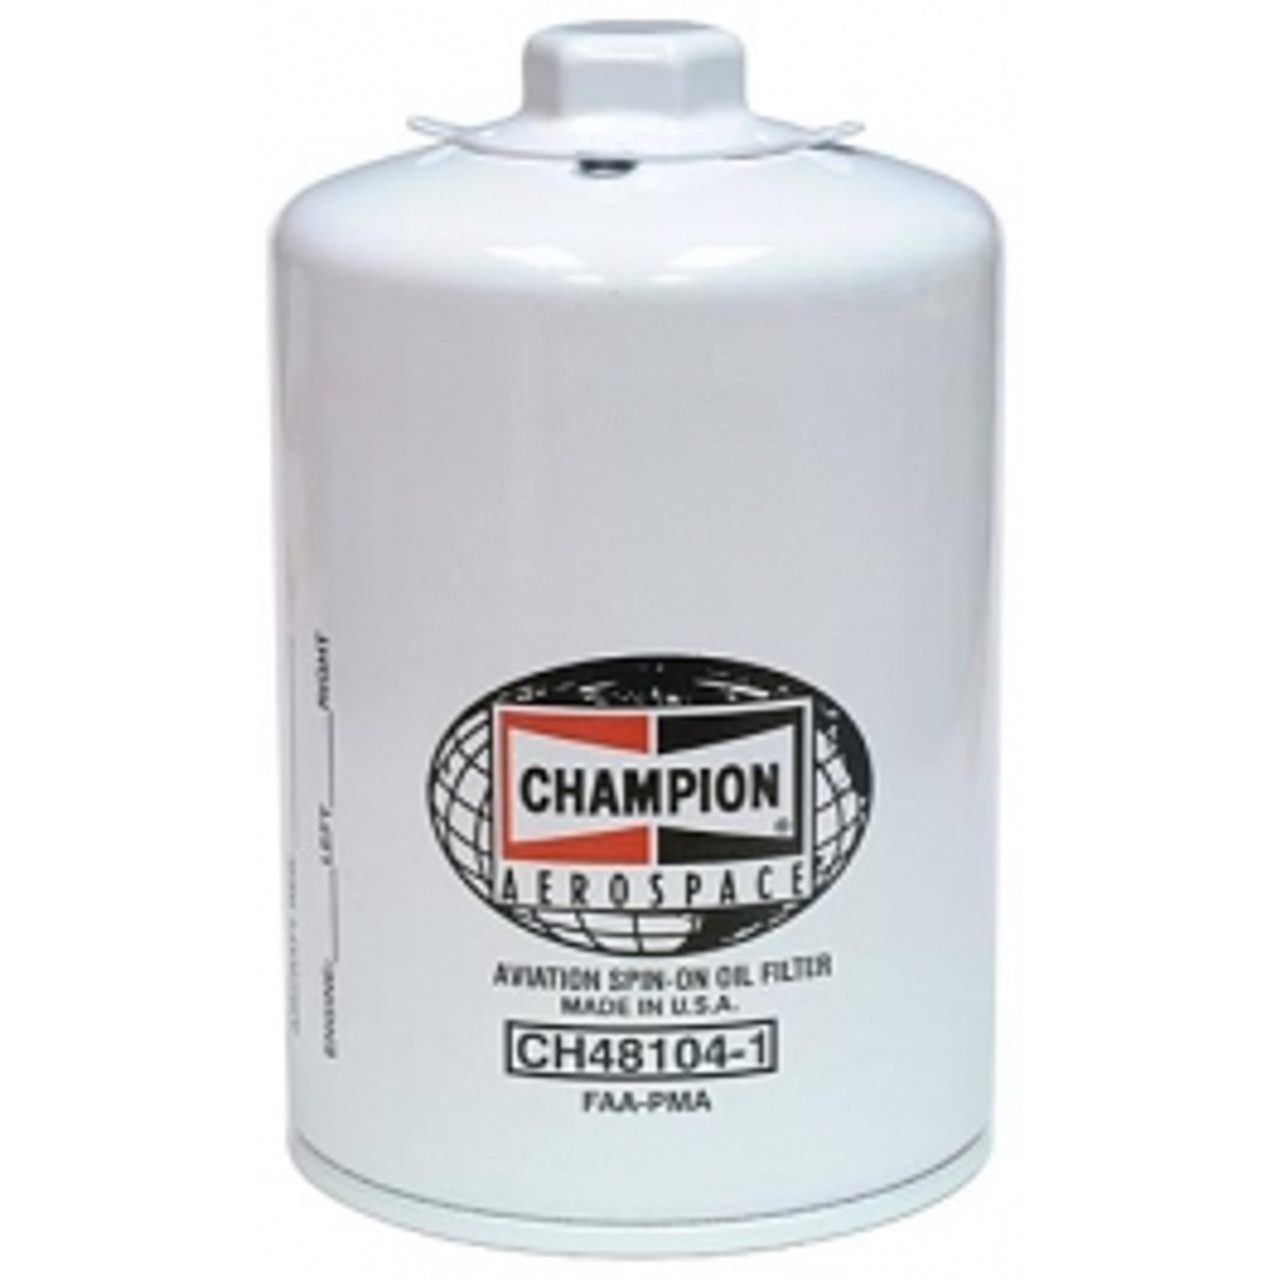 Champion Spin Oil Filter - CH48104